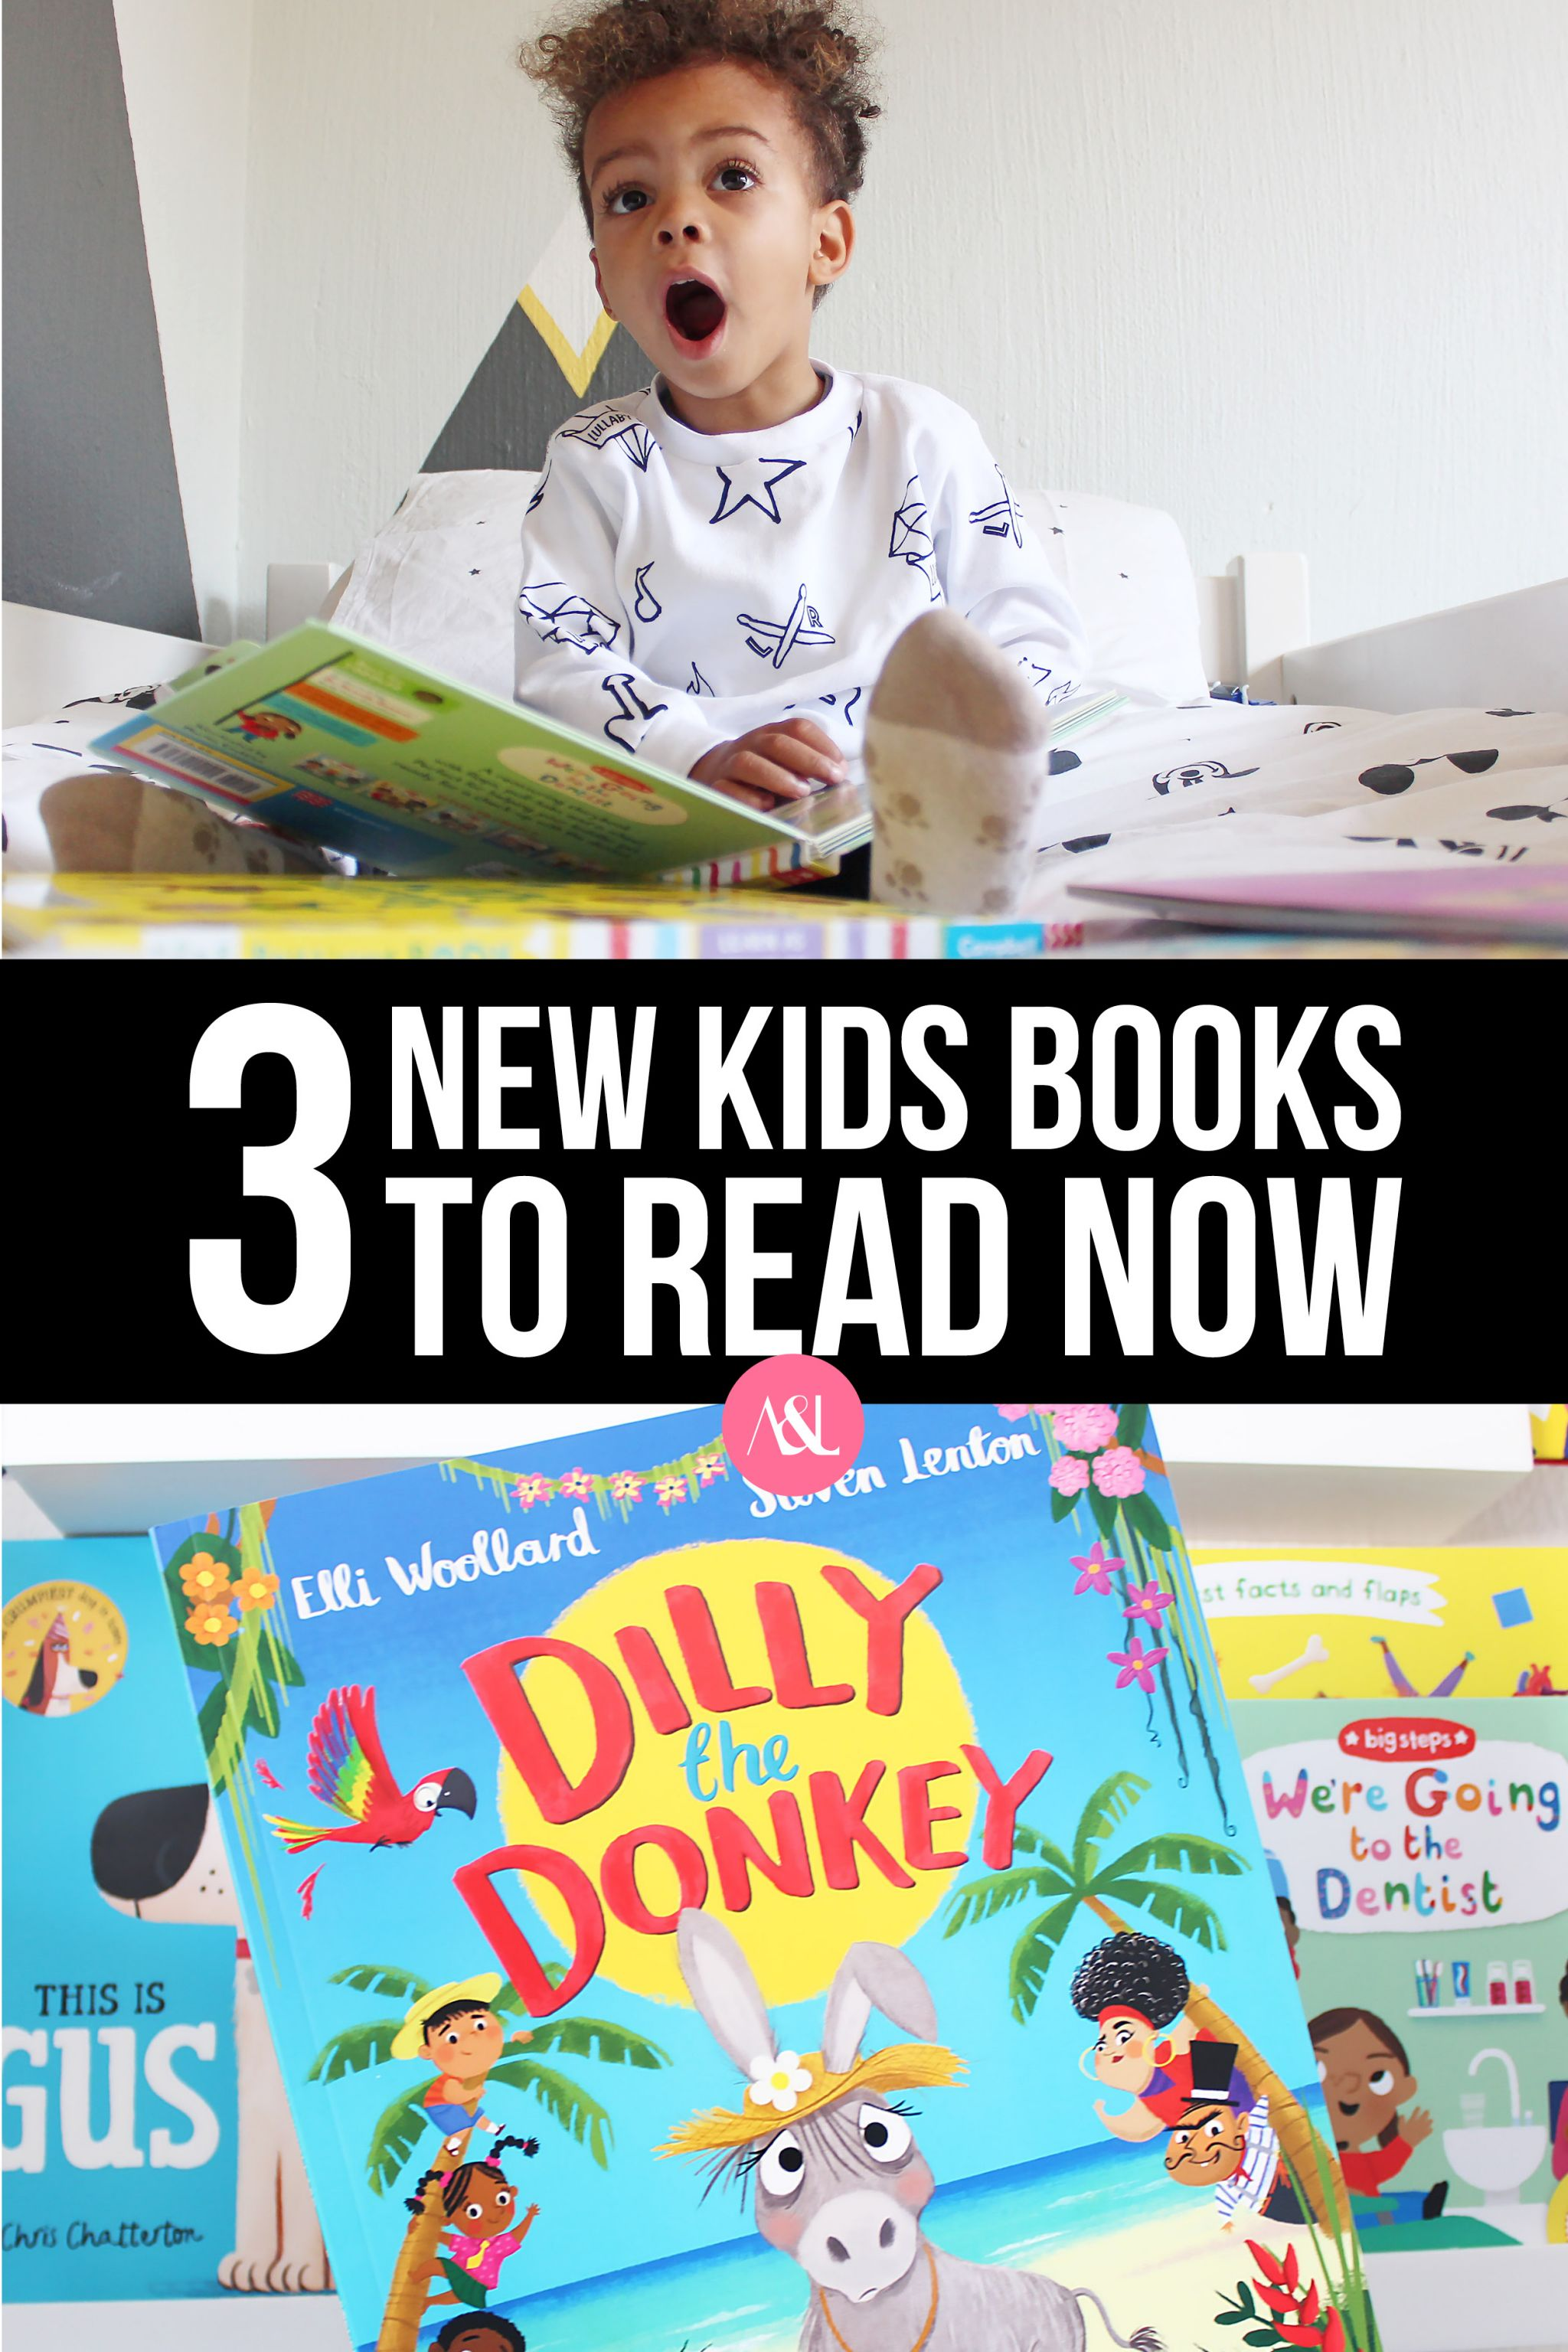 3 New Kids Books to Read Now. Looking for new books to read to your little one? I'm sharing three great new books perfect for toddlers.